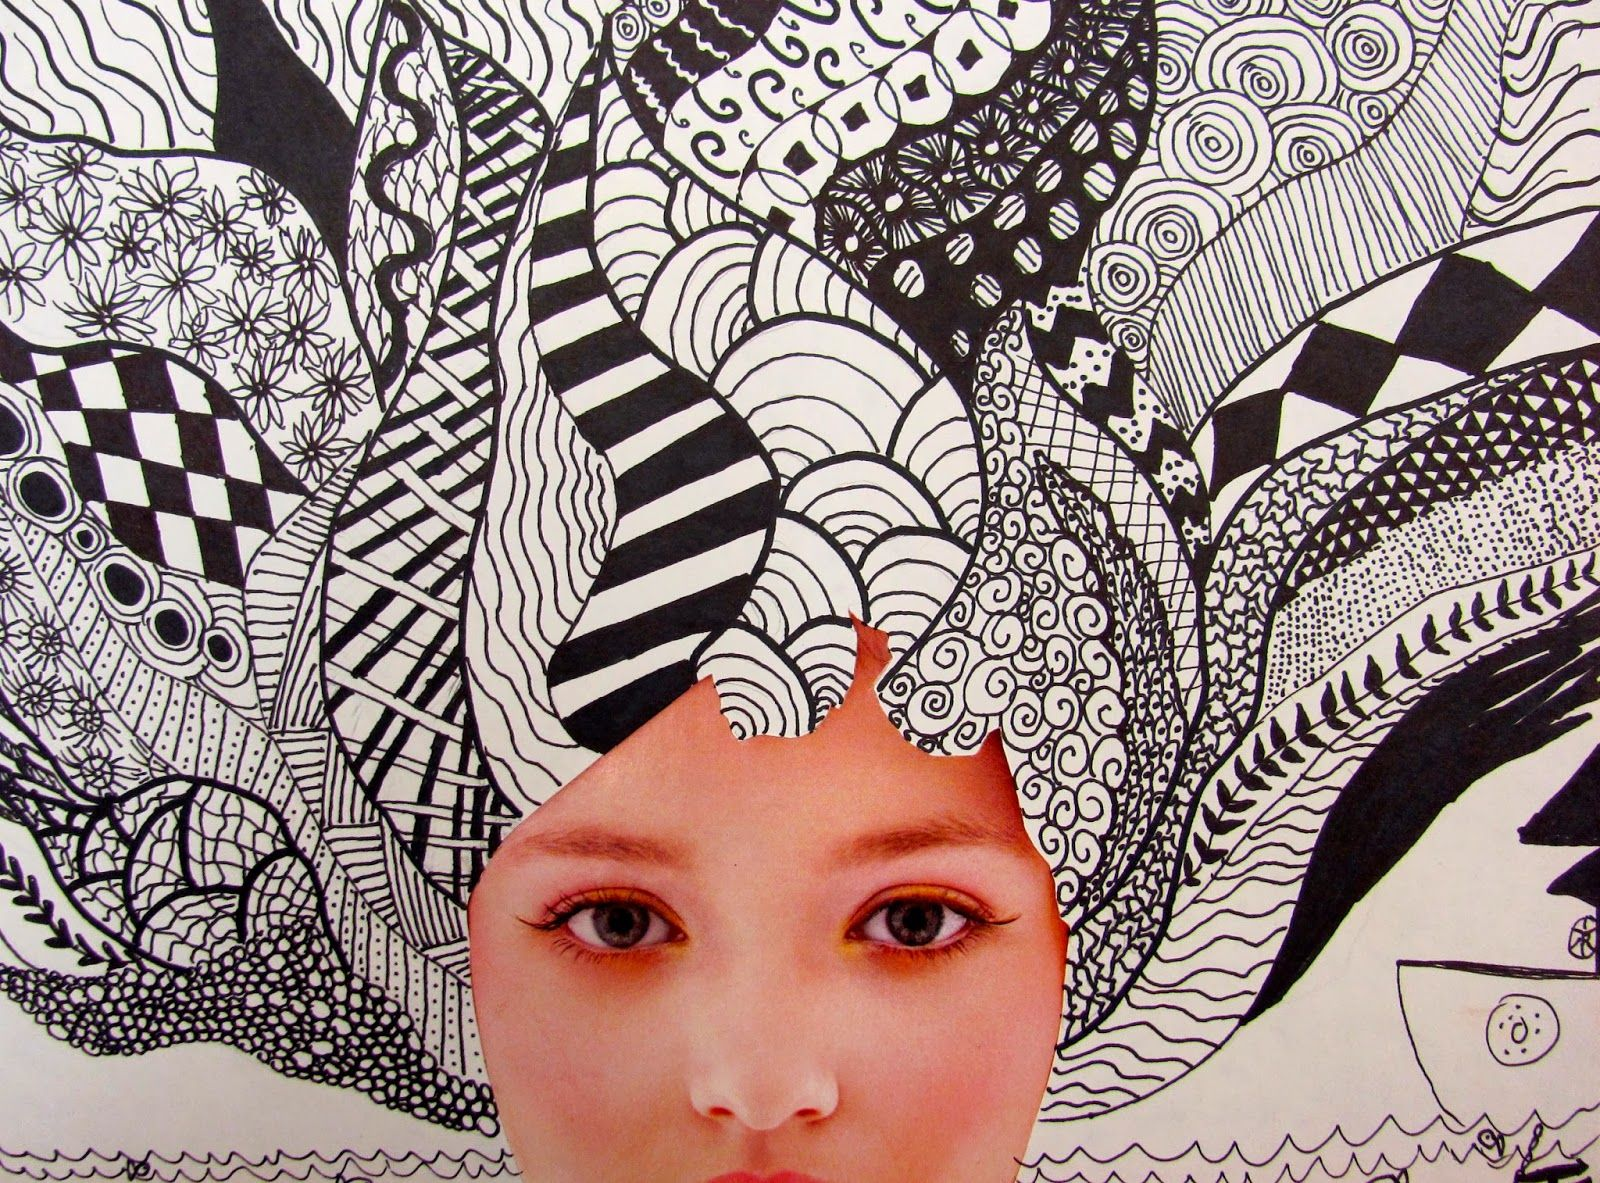 Zentangle Collage - Cut Face Of Magazine And Add Hair. Projects In 2019 Art